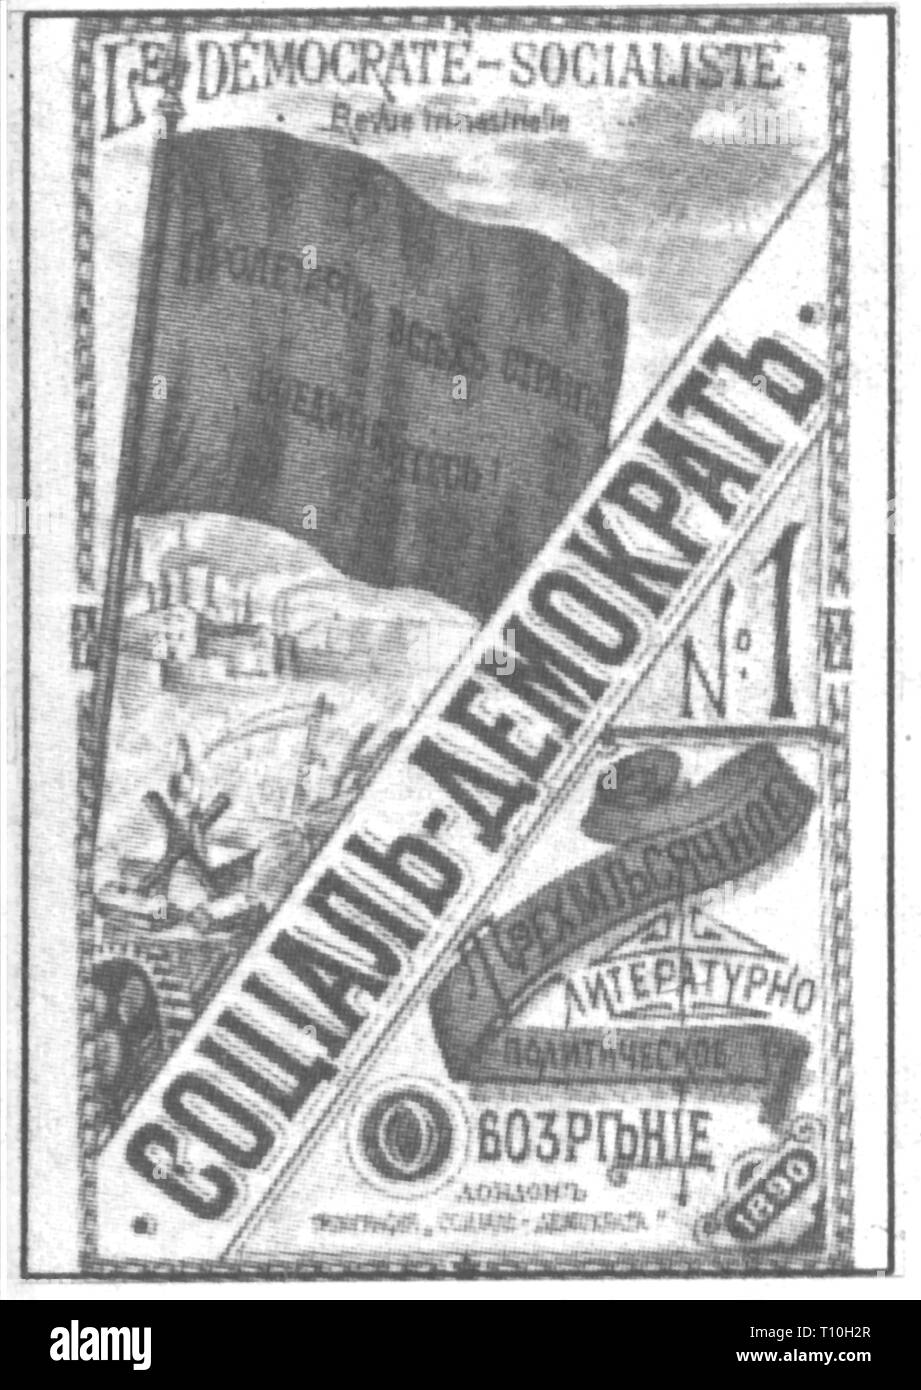 press/media, magazines, 'Le Democrate-Socialiste' (The Social-Democrat), title page, number 1, London, 1890, Great Britain, Russia, graphic, graphics, script, scripts, masthead, title, titles, typo, typeface, type, typefaces, fonts, types, font, Cyrillic, flag, flags, politics, social democracy, social democracies, socialism, Marxism, containing essay by Friedrich Engels (1820 - 1895) on Russian foreign policy, Bolshevism, communism, ideology, ideologies, 19th century, Democrate - Socialiste, press, presses, number, numbers, historic, historical, Additional-Rights-Clearance-Info-Not-Available - Stock Image